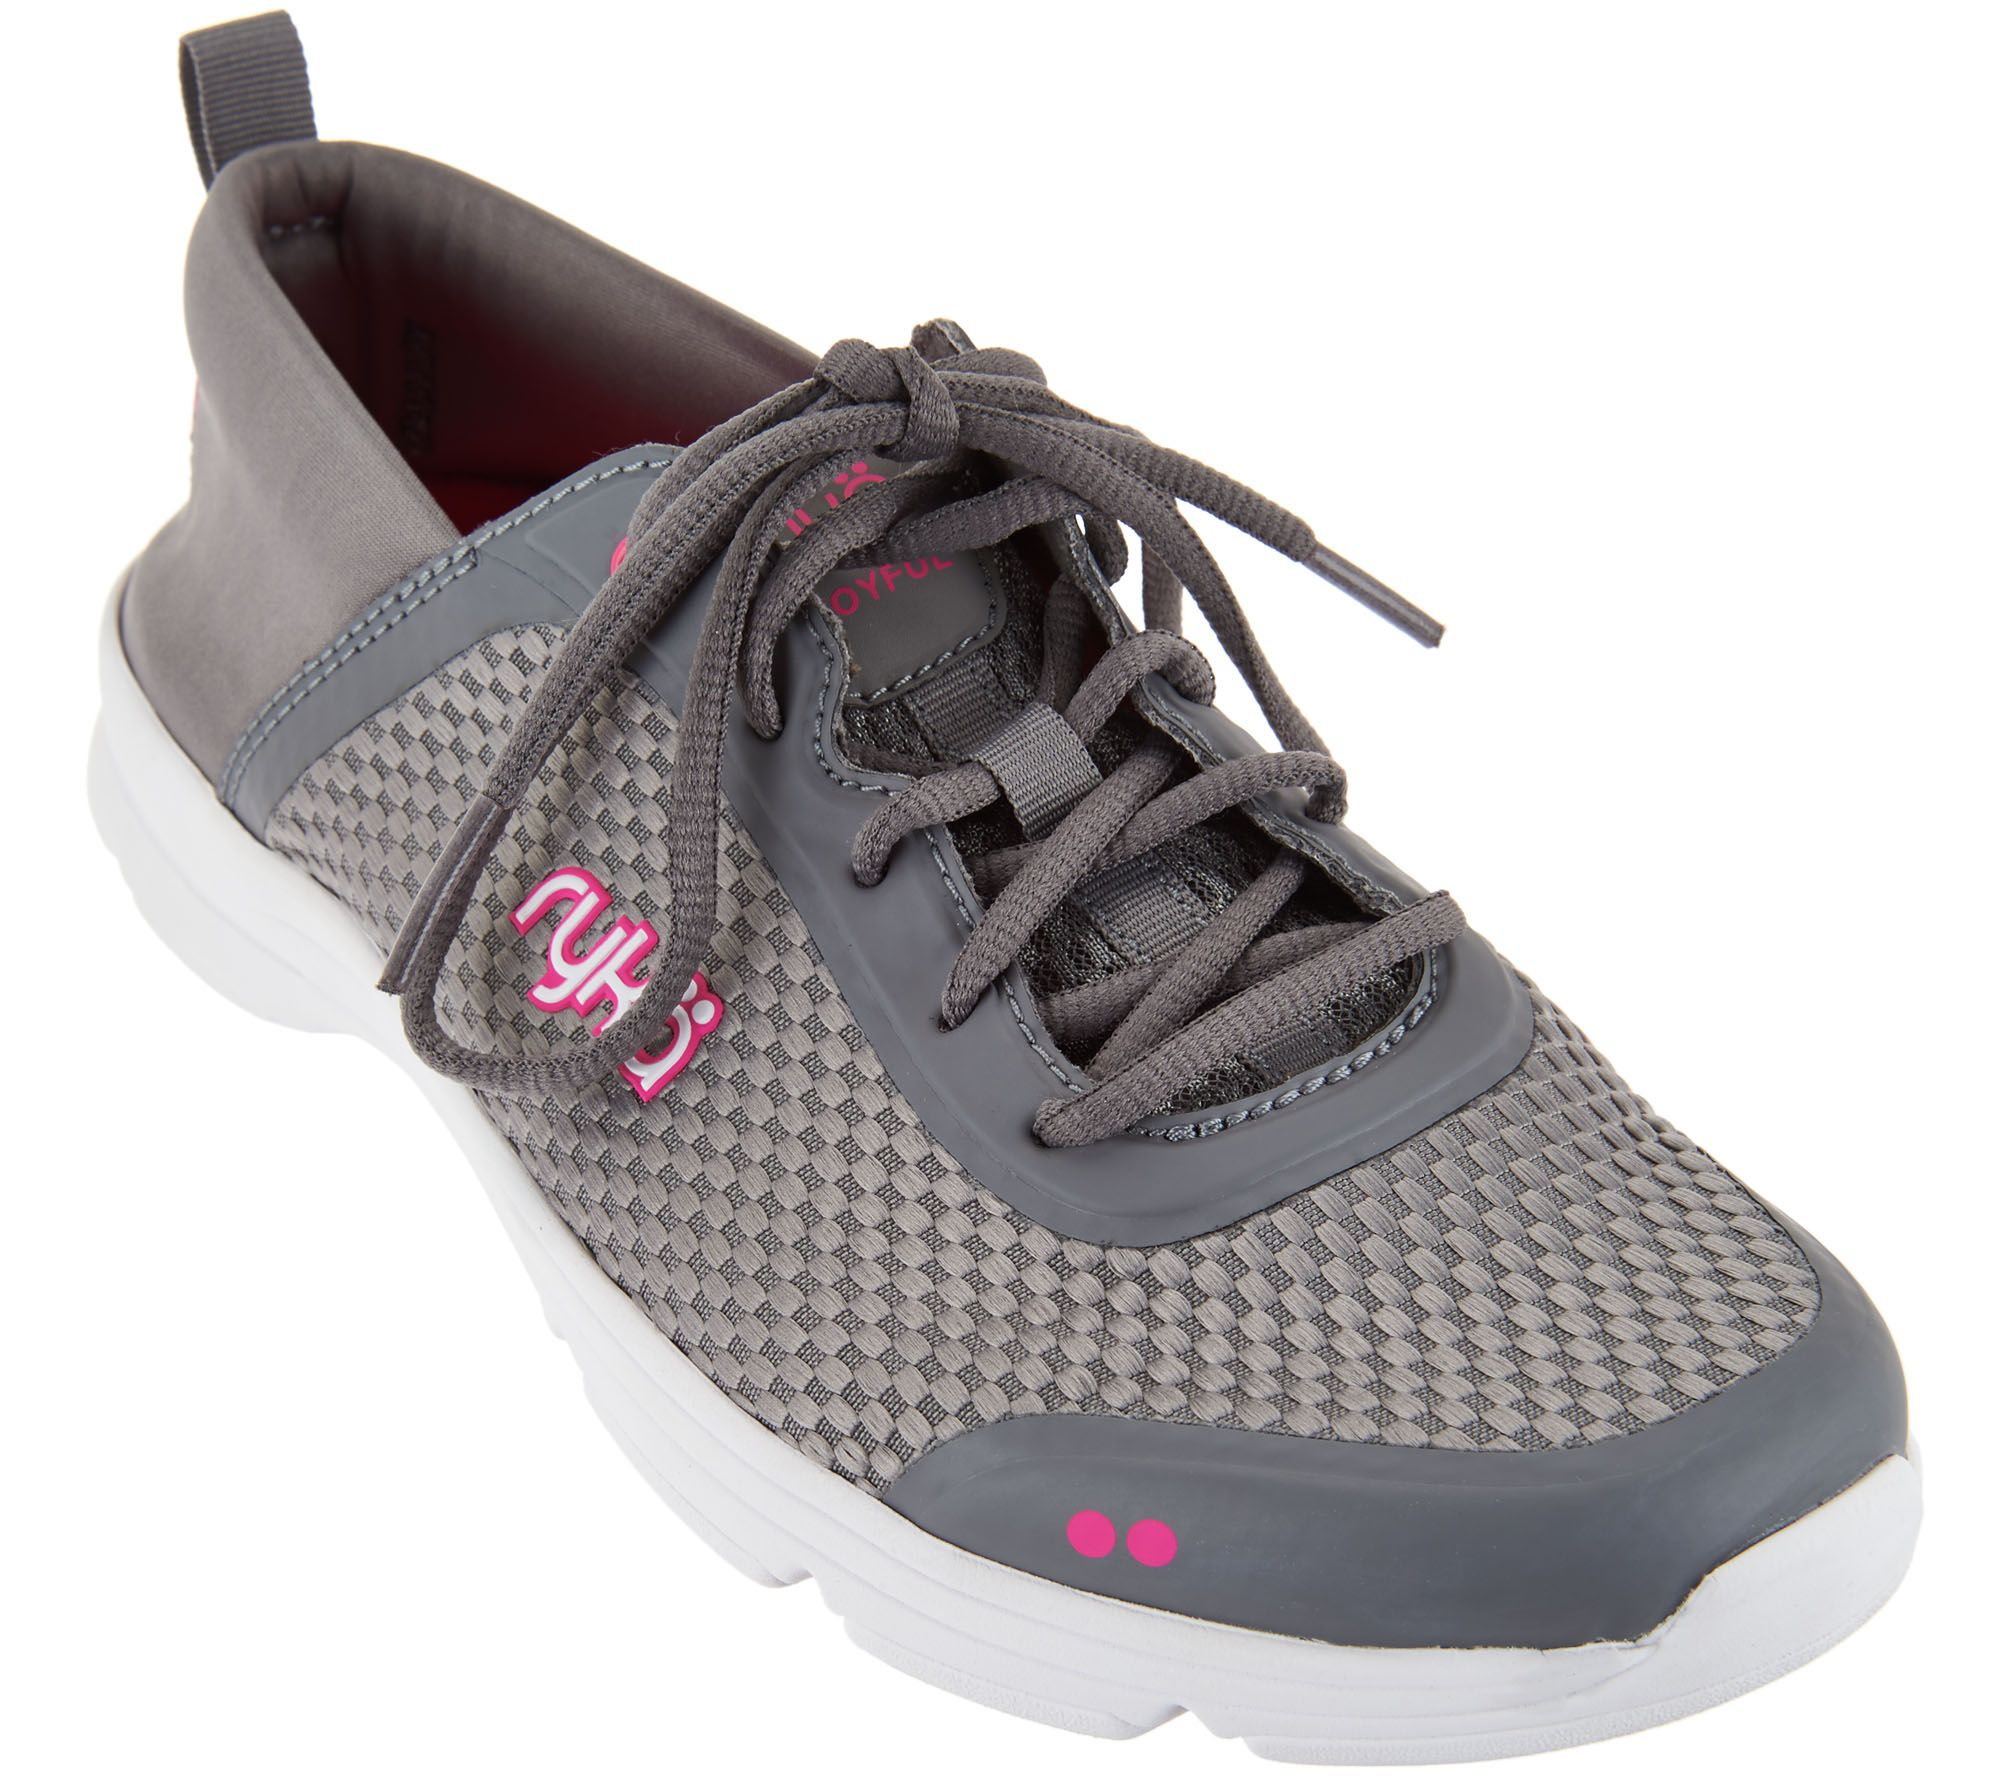 Ryka — Womens Sneakers, Walking Shoes & Sandals — QVC.com